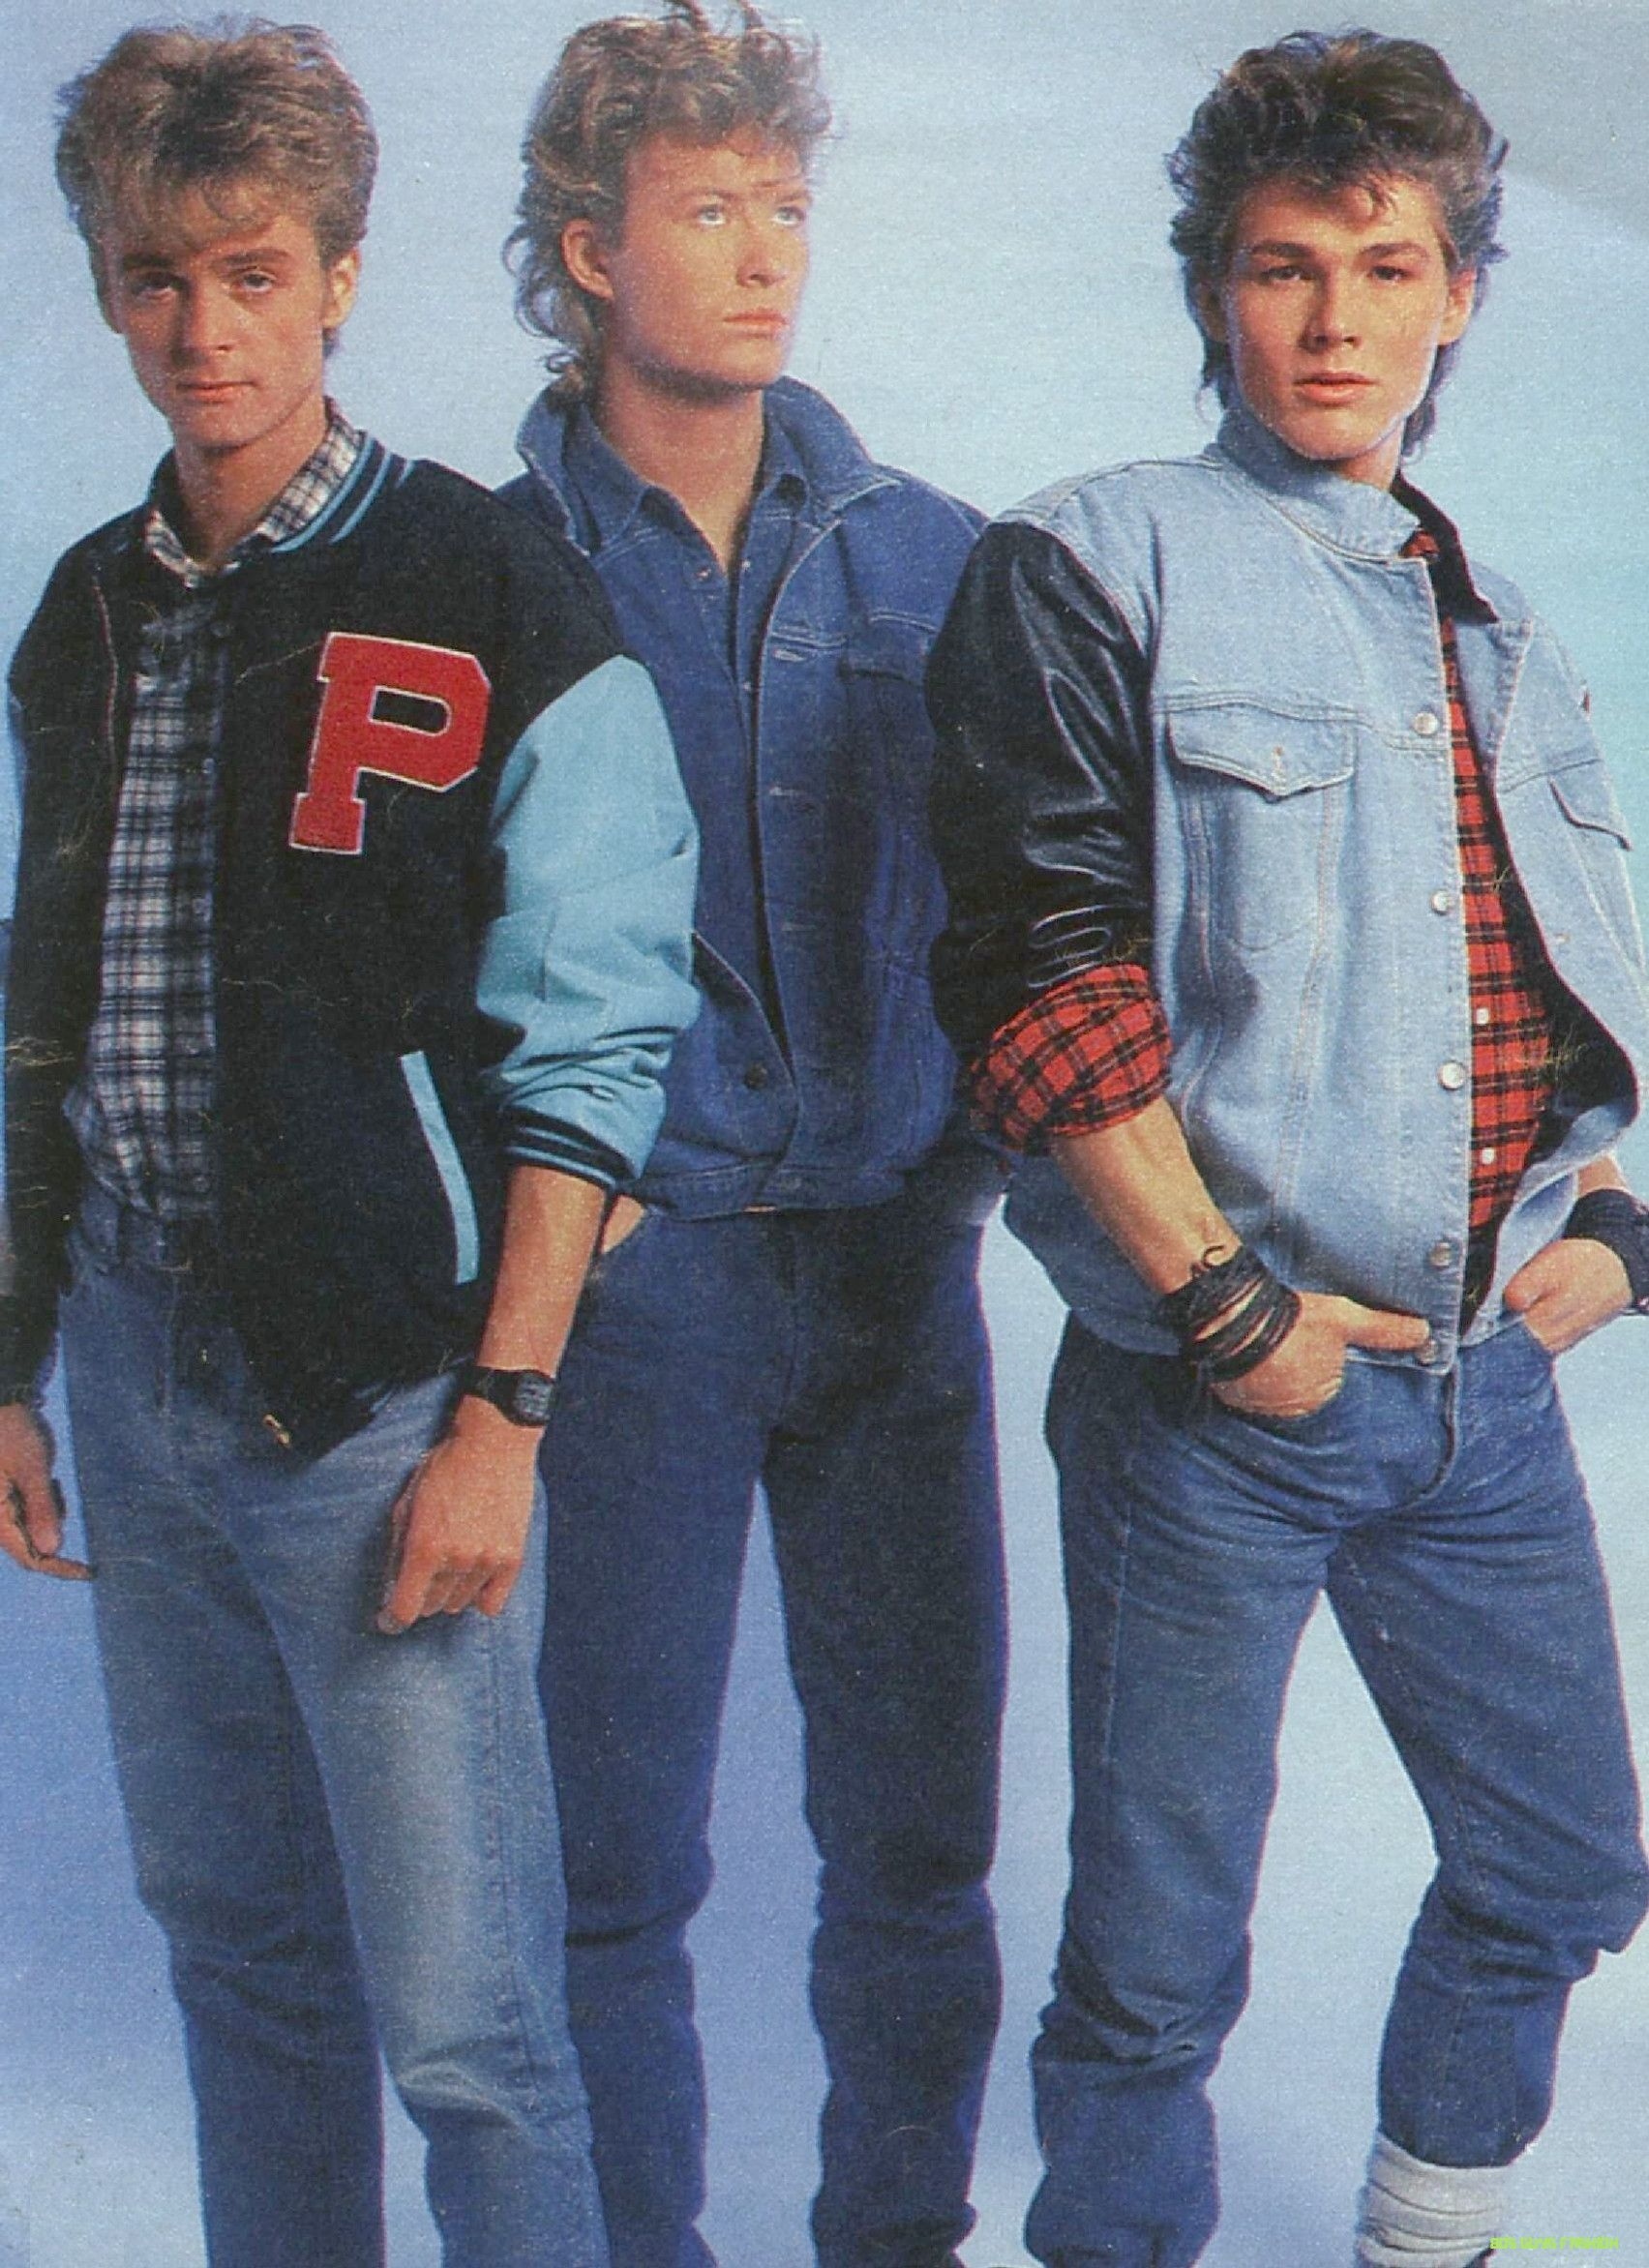 Five Reliable Sources To Learn About 10s Guys Fashion 10s Guys Fashion Https Fashion Neat Com Five Reliabl 80s Fashion Men 1980s Fashion Trends 80s Fashion